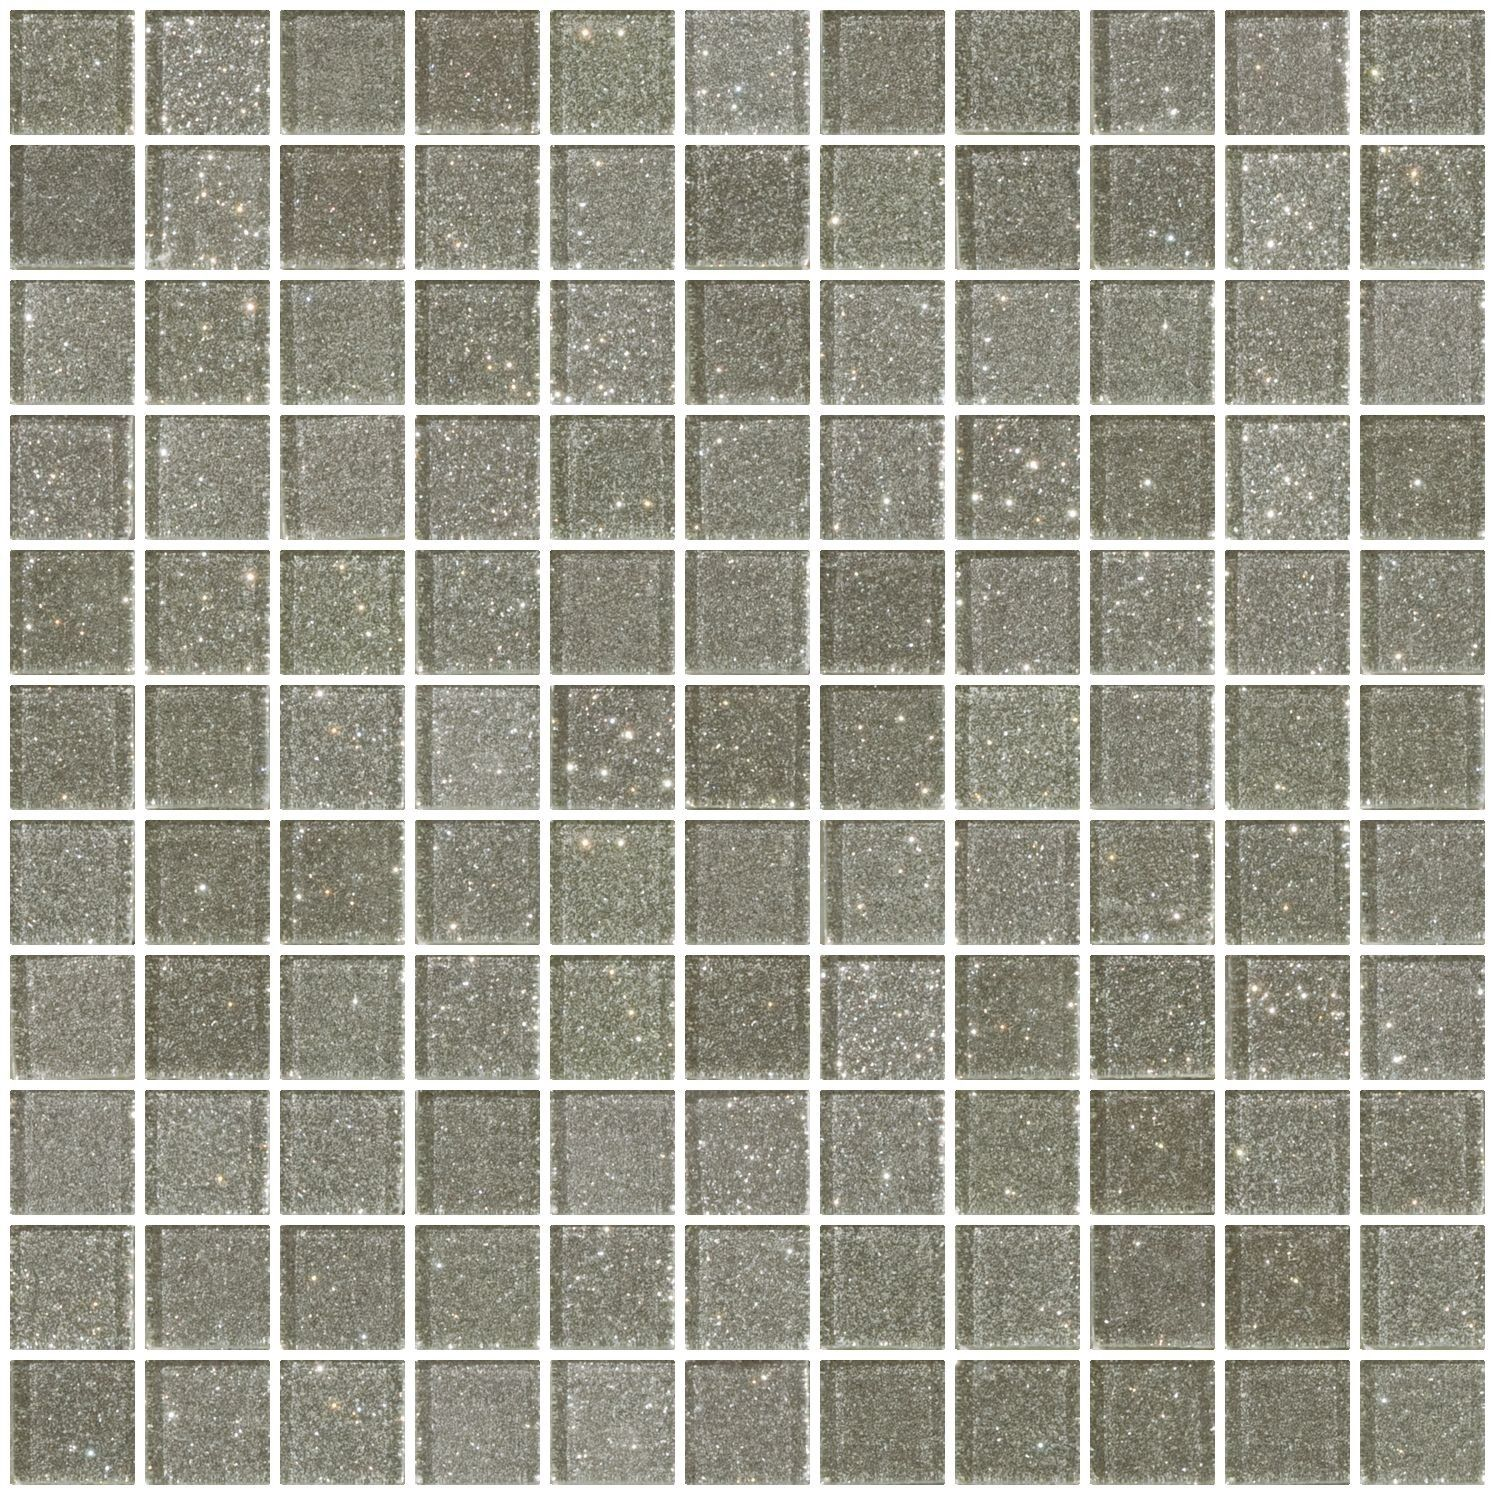 1 Inch Silver Glitter Glass Tile Mosaic Glass Mosaic Tiles Glass Mosaic Tiles